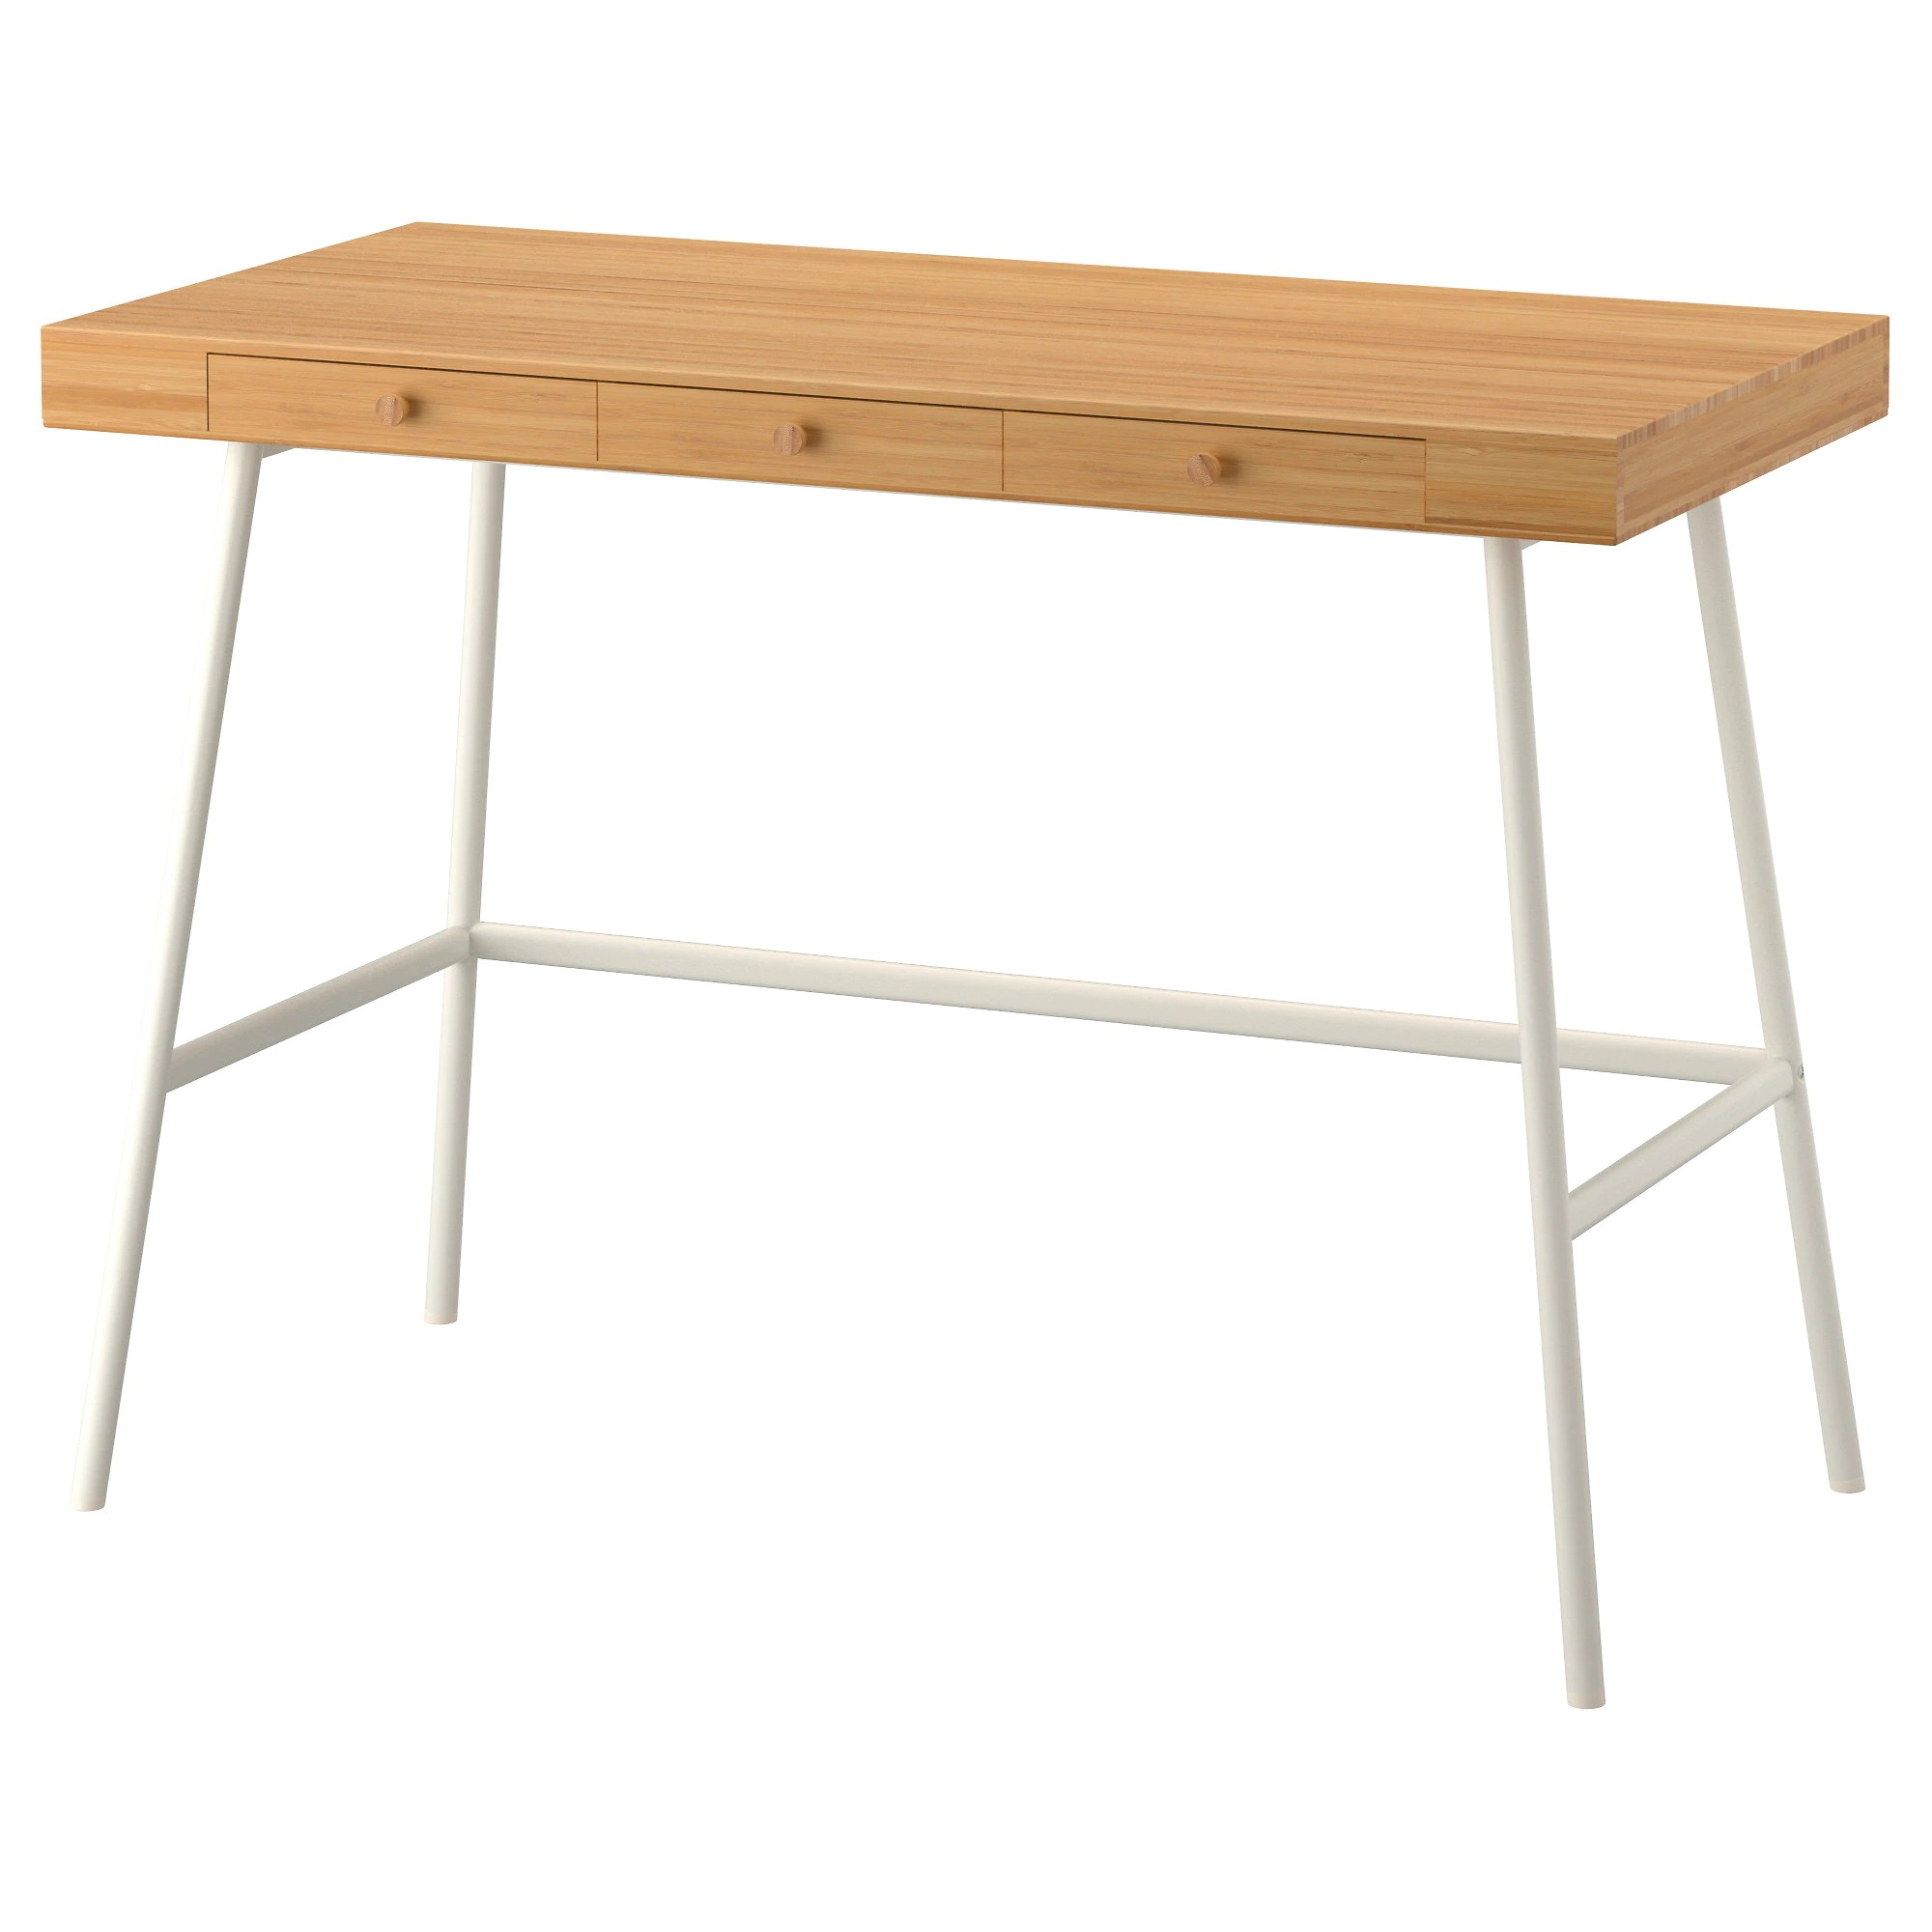 Ikea Table LillÅsen Desk Bamboo